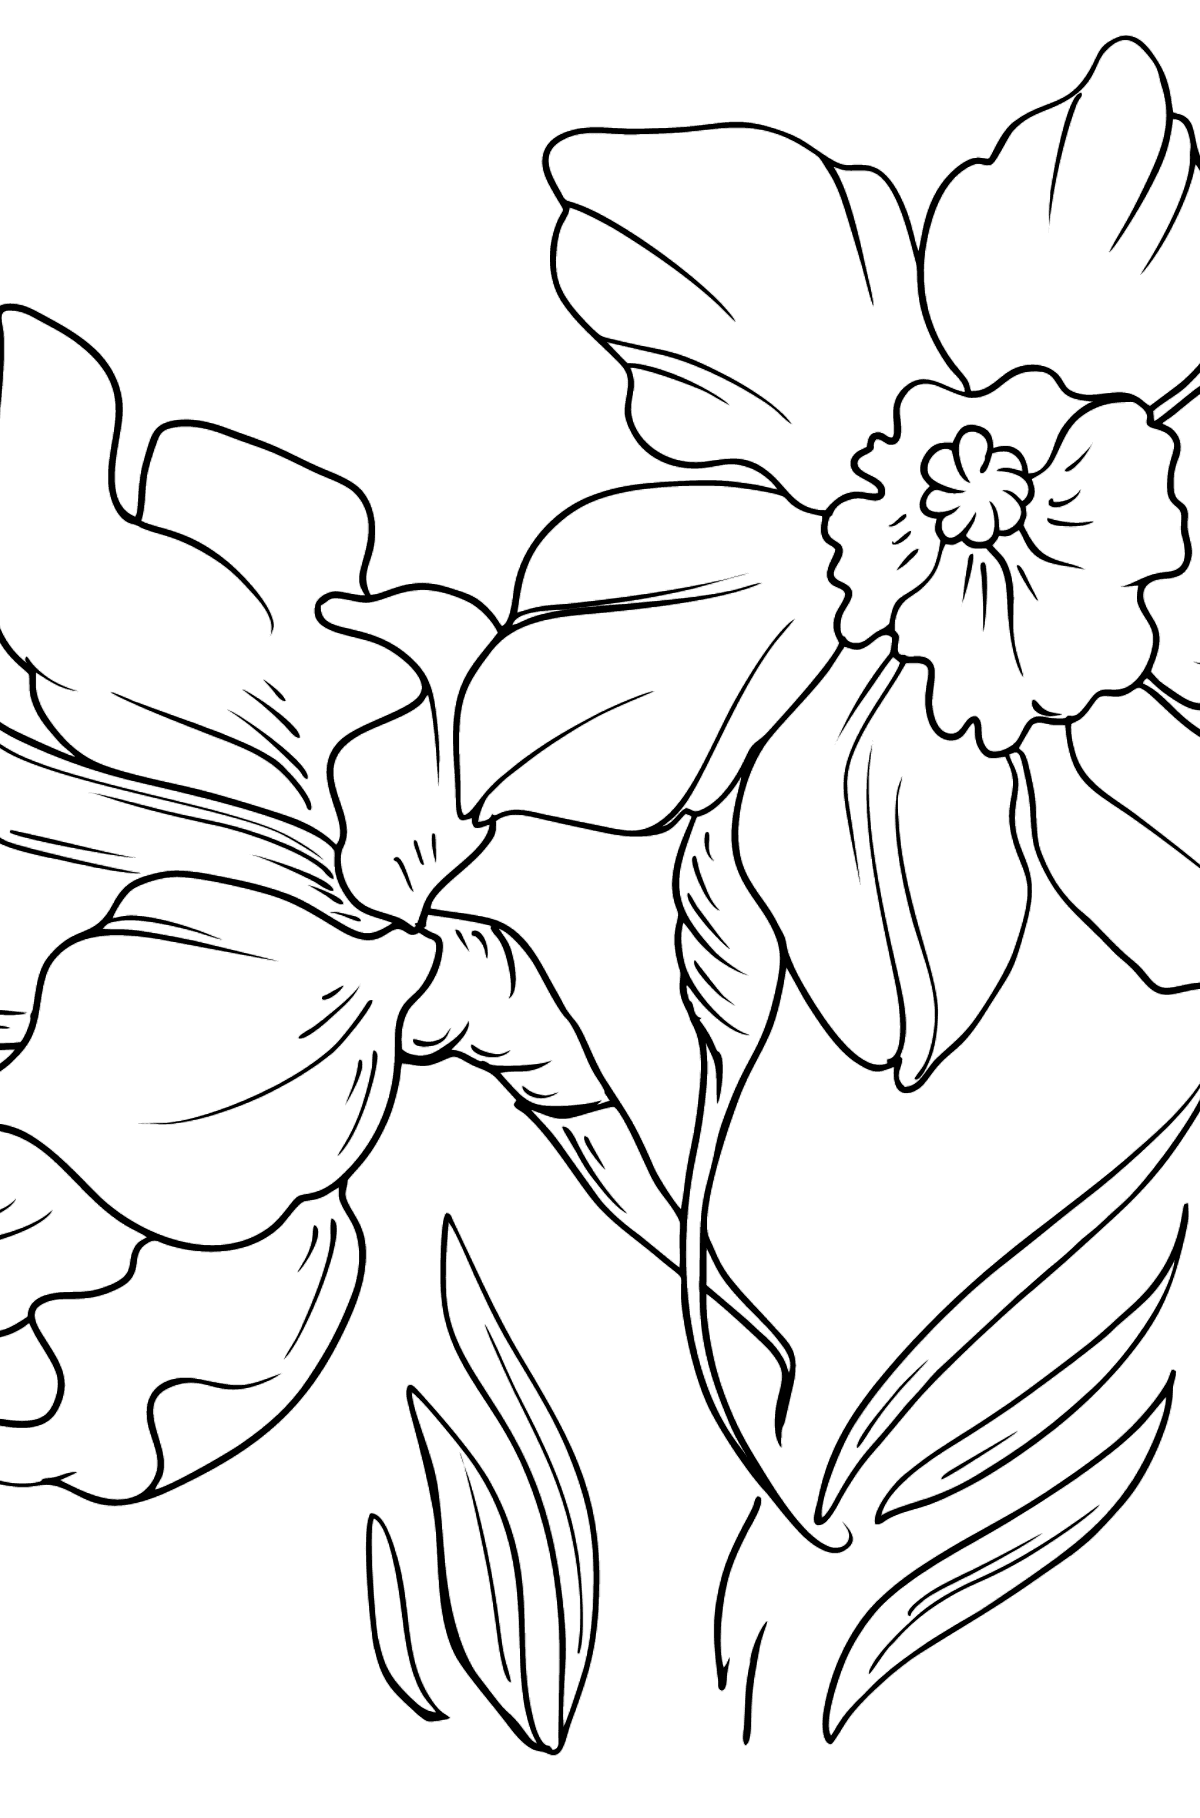 Flower Coloring Page - Daffodils - Coloring Pages for Kids